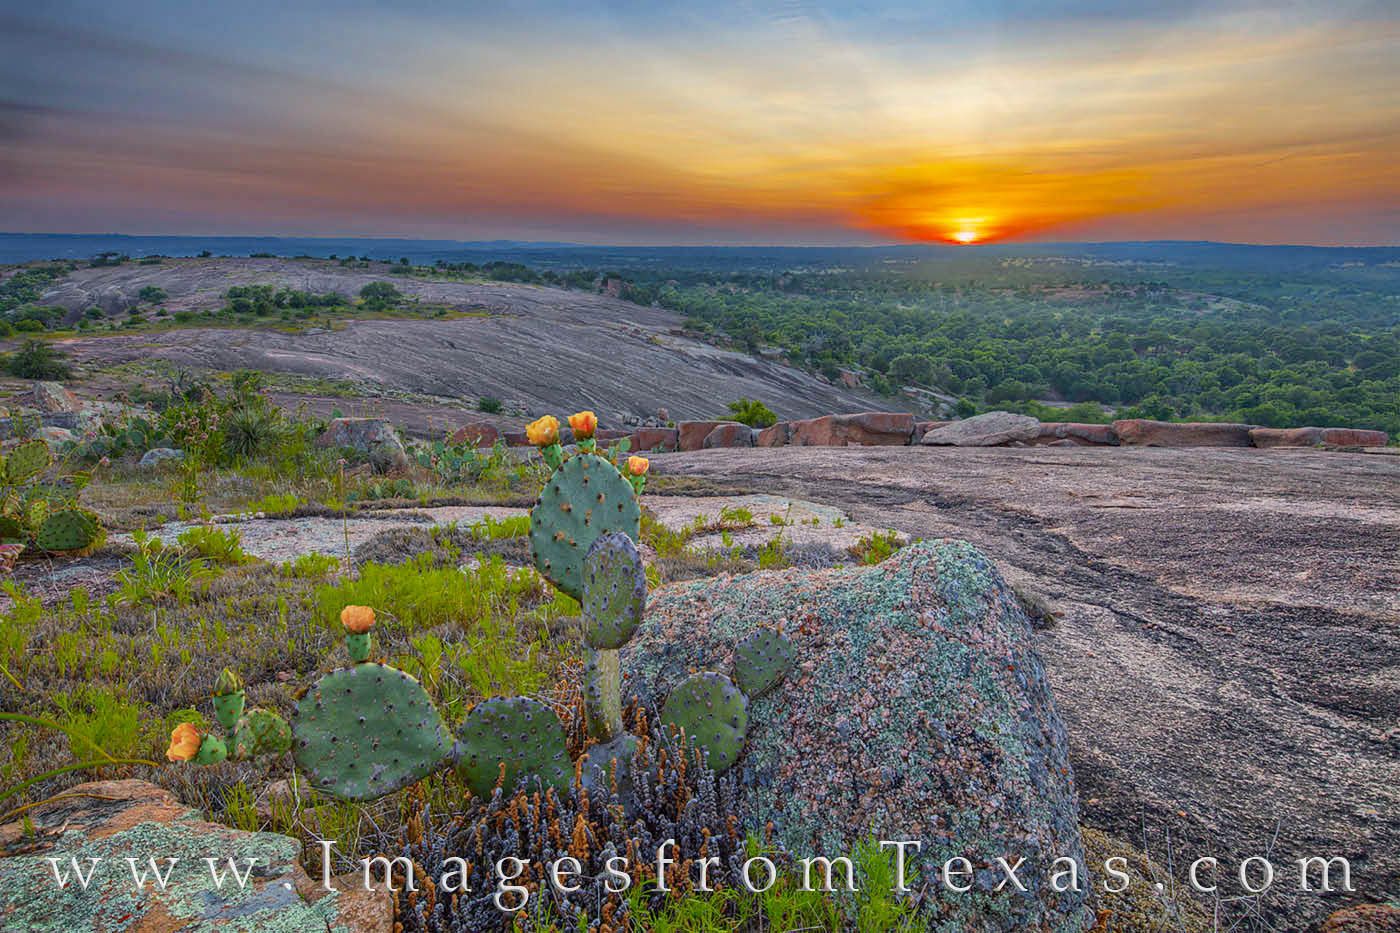 sunset, hill country, prickly pear, cactus, lizard, enchanted rock, little rock, photo